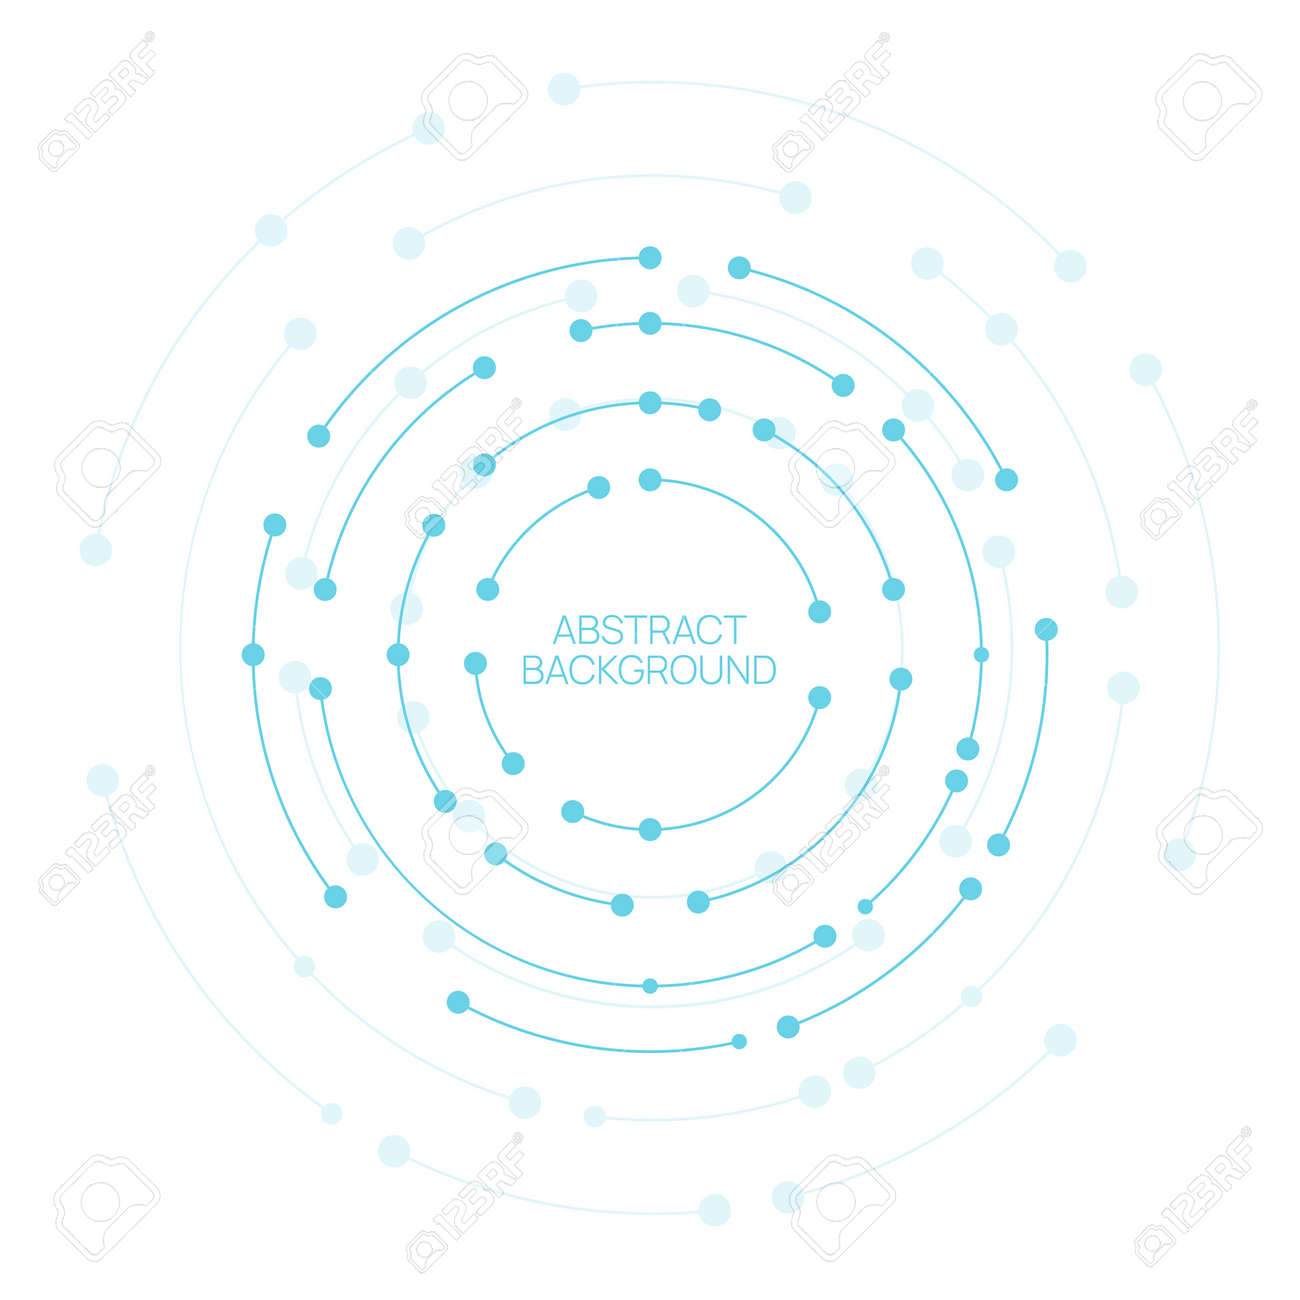 Vector abstract background with circles - 172797682